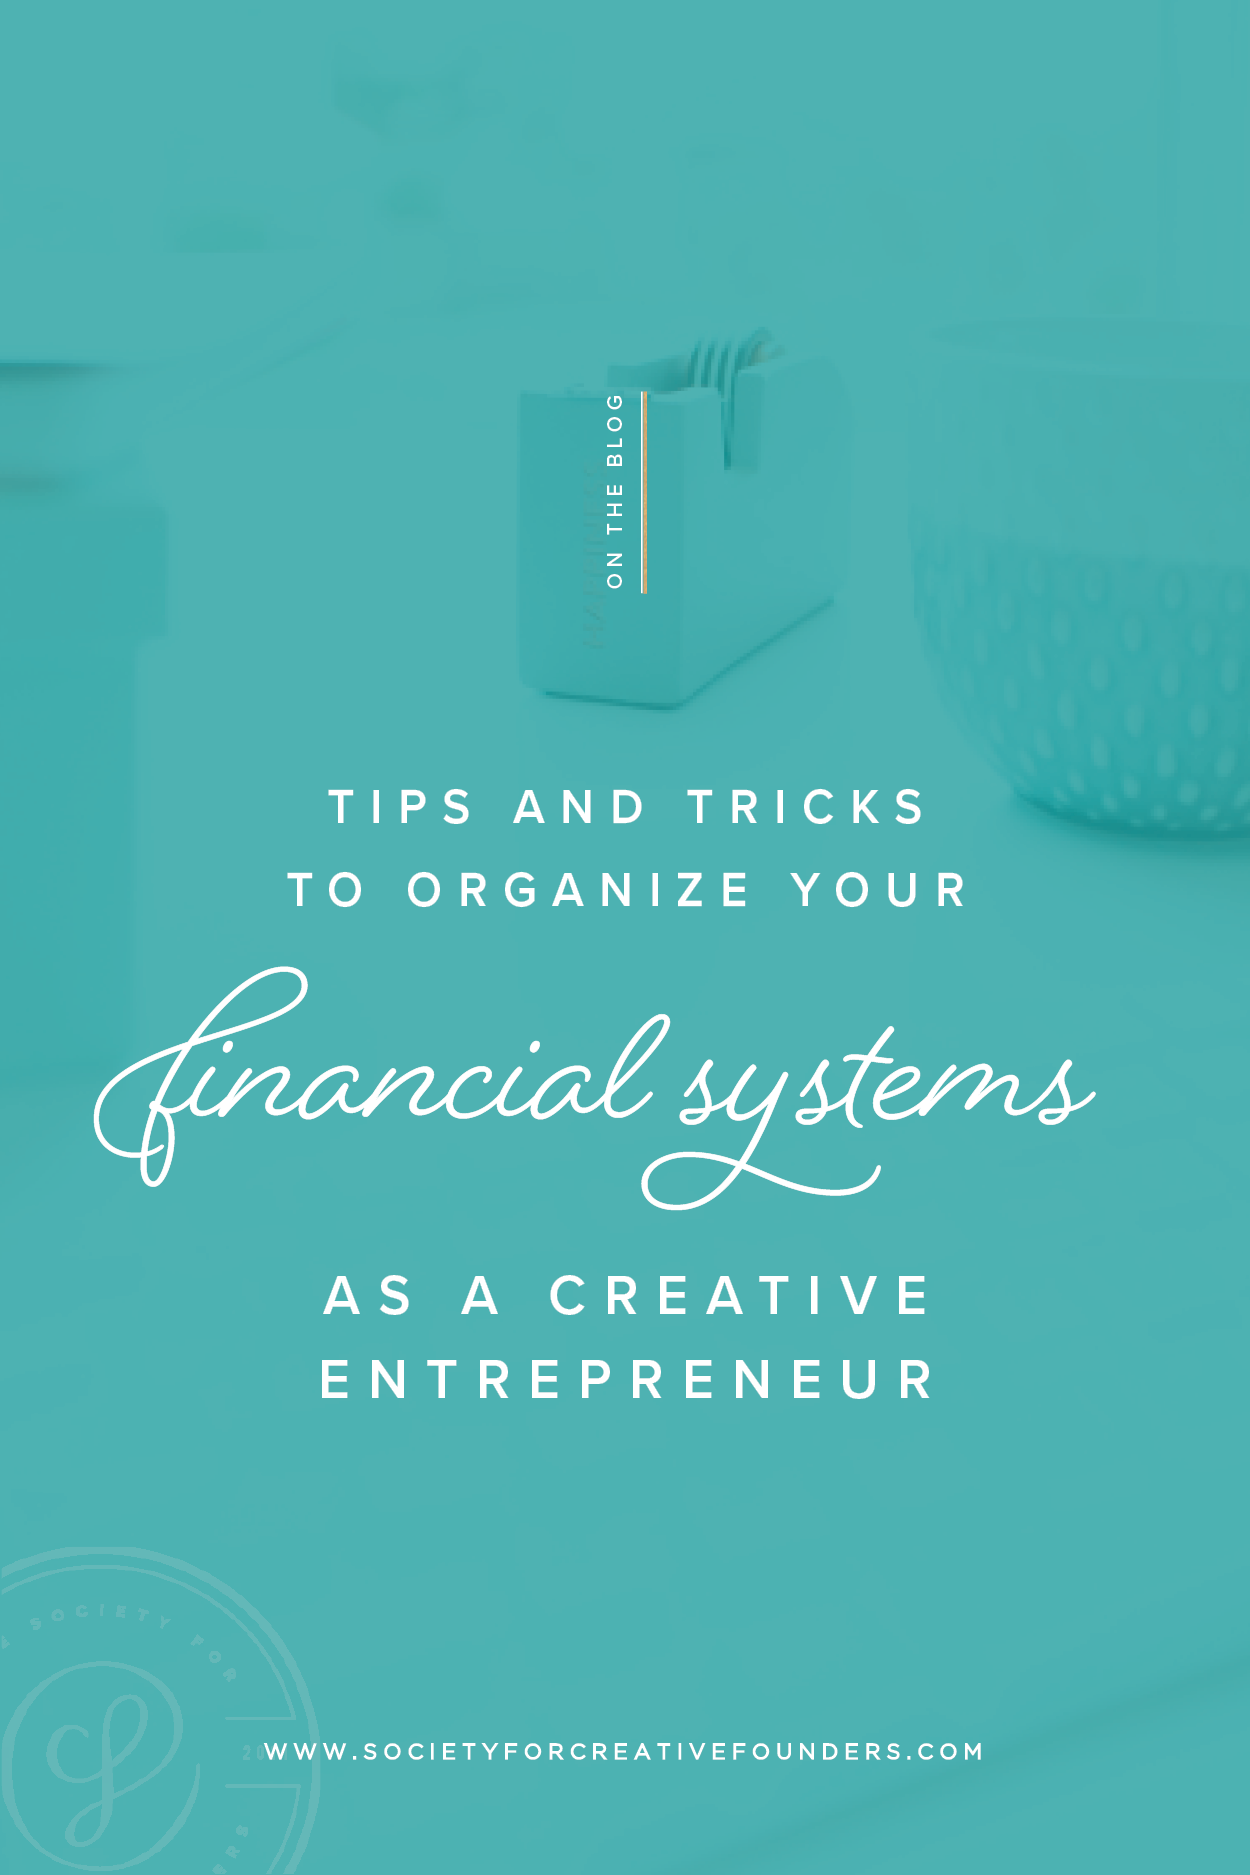 Tips and Tricks to Organize your Financial Systems as a Creative Entrepreneur, from Society for Creative Founders and Janet LeBlanc of Paper and Spark